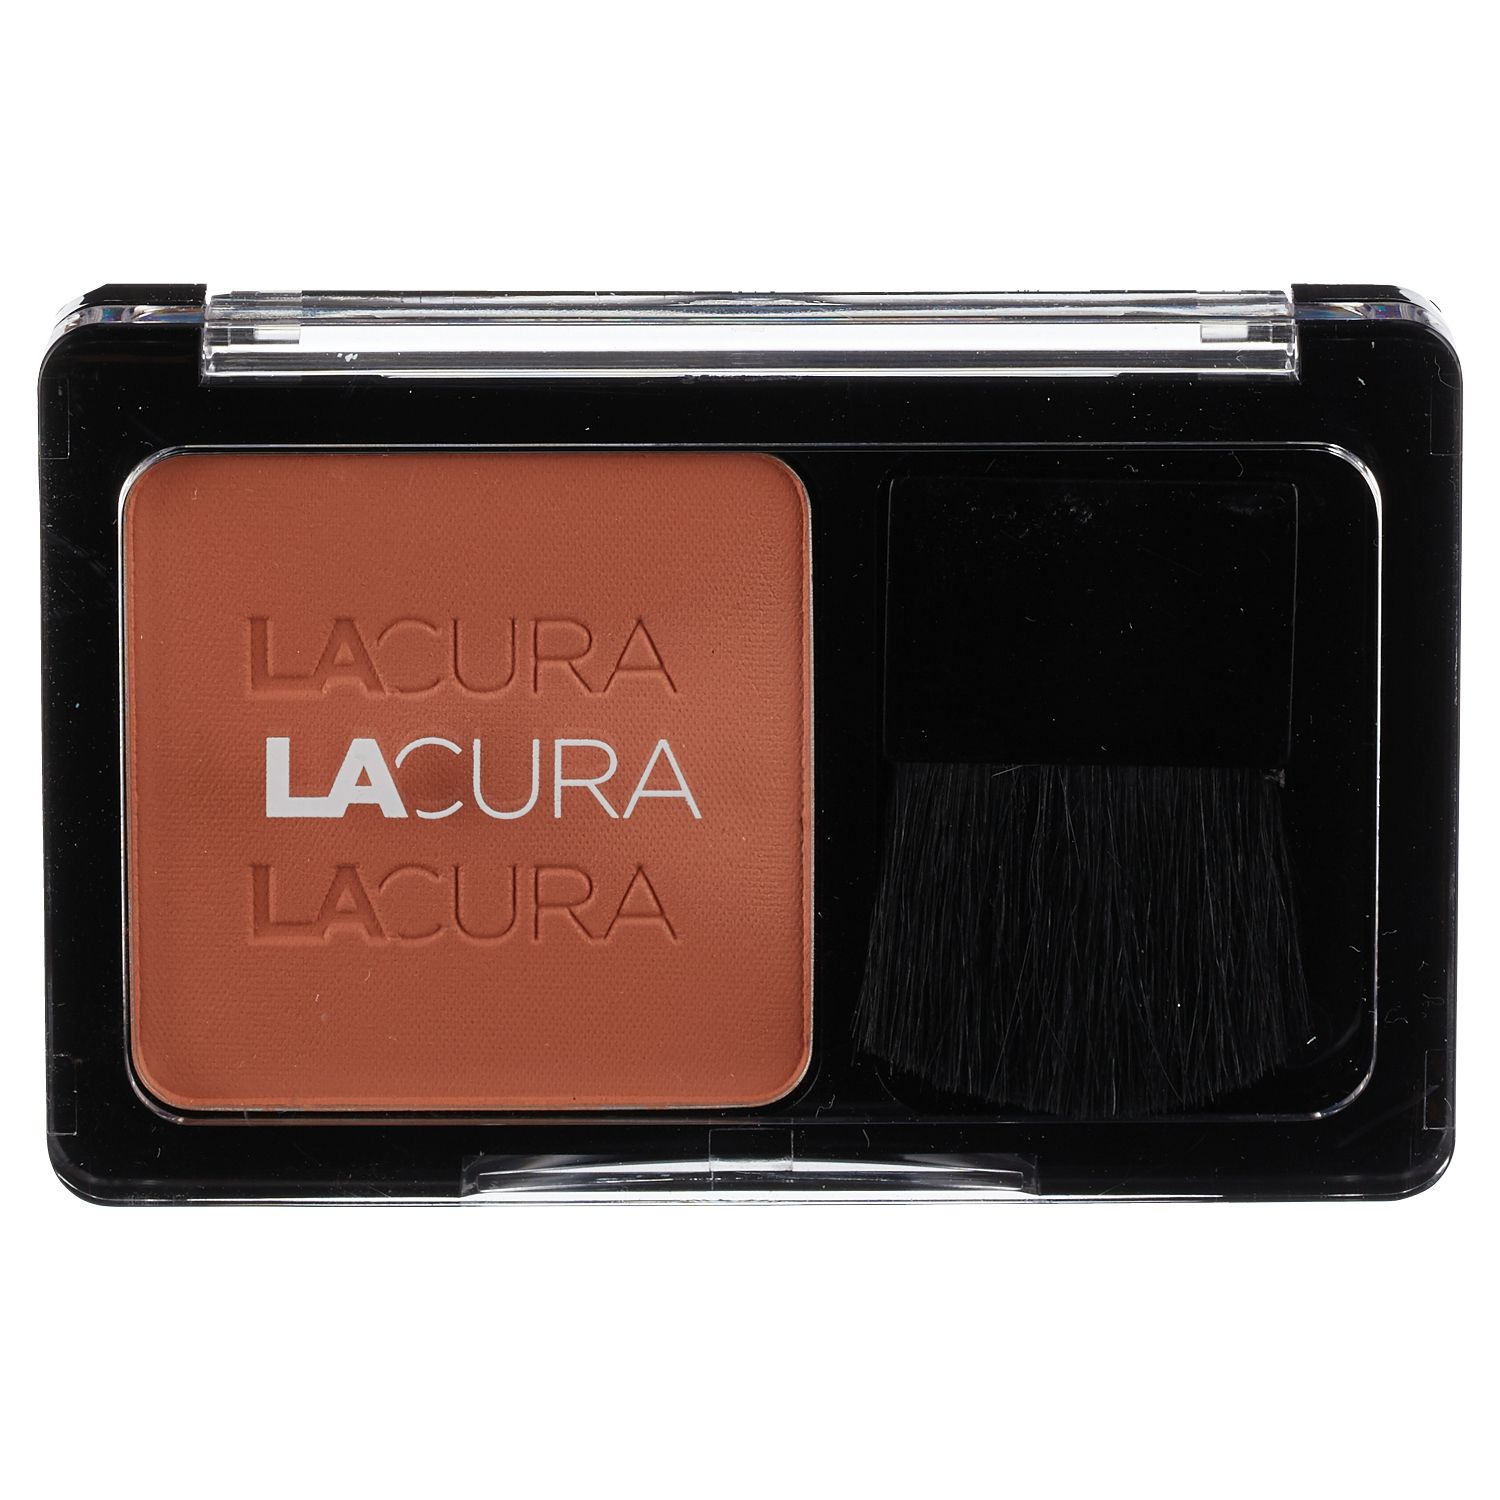 LACURA Rouge 5 g